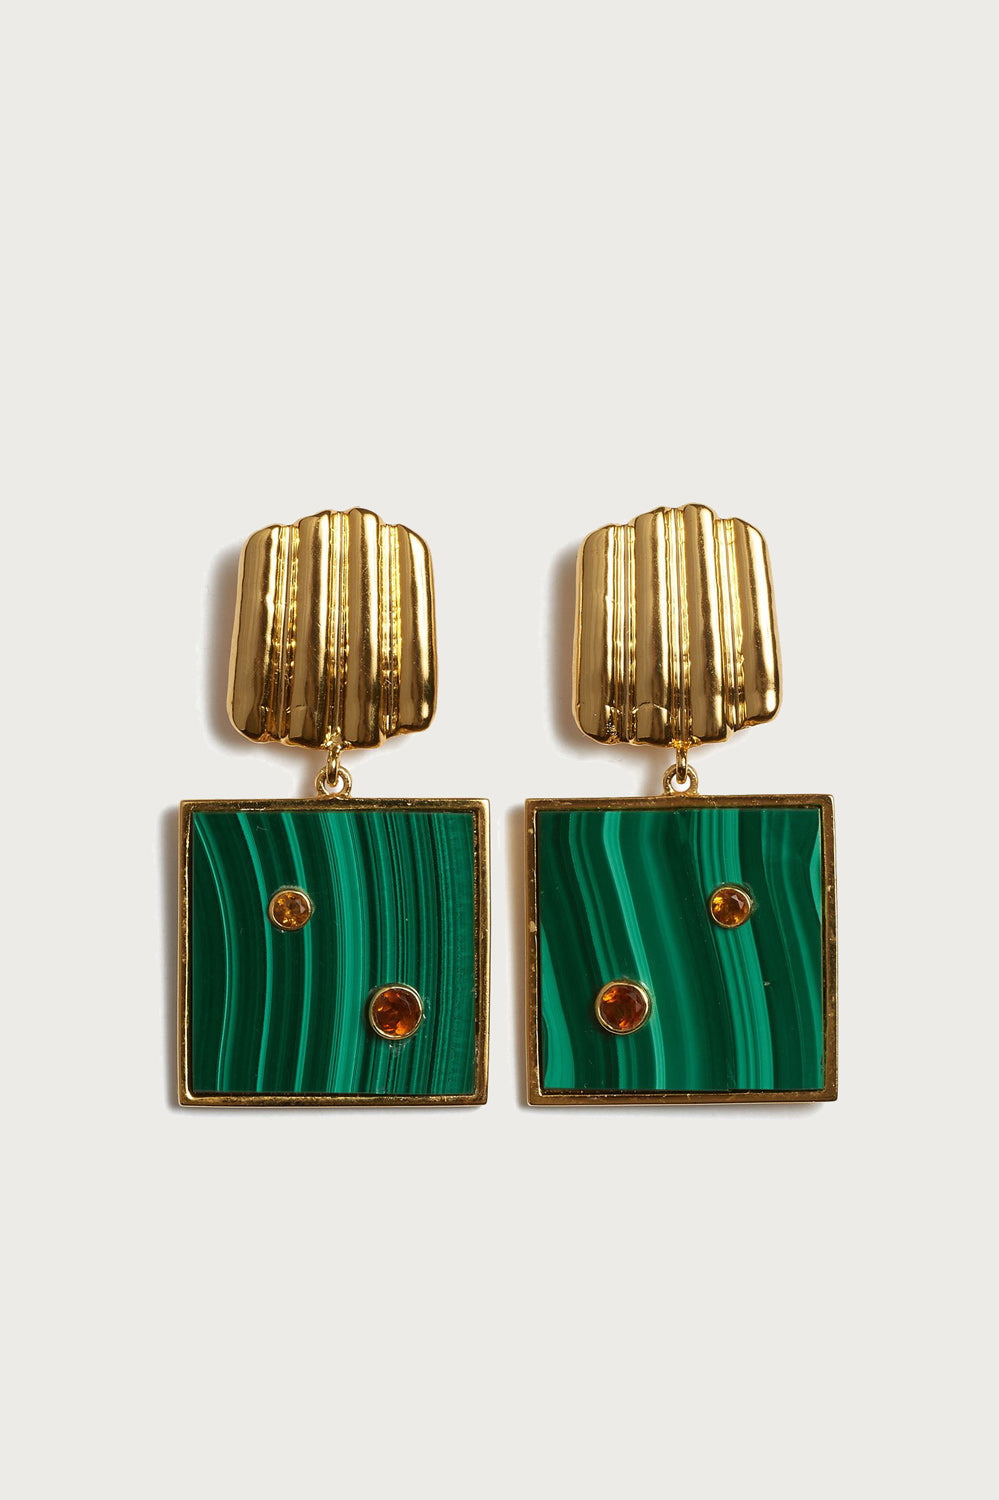 Lizzie Fortunato Green Wave Earrings - Vert & Vogue